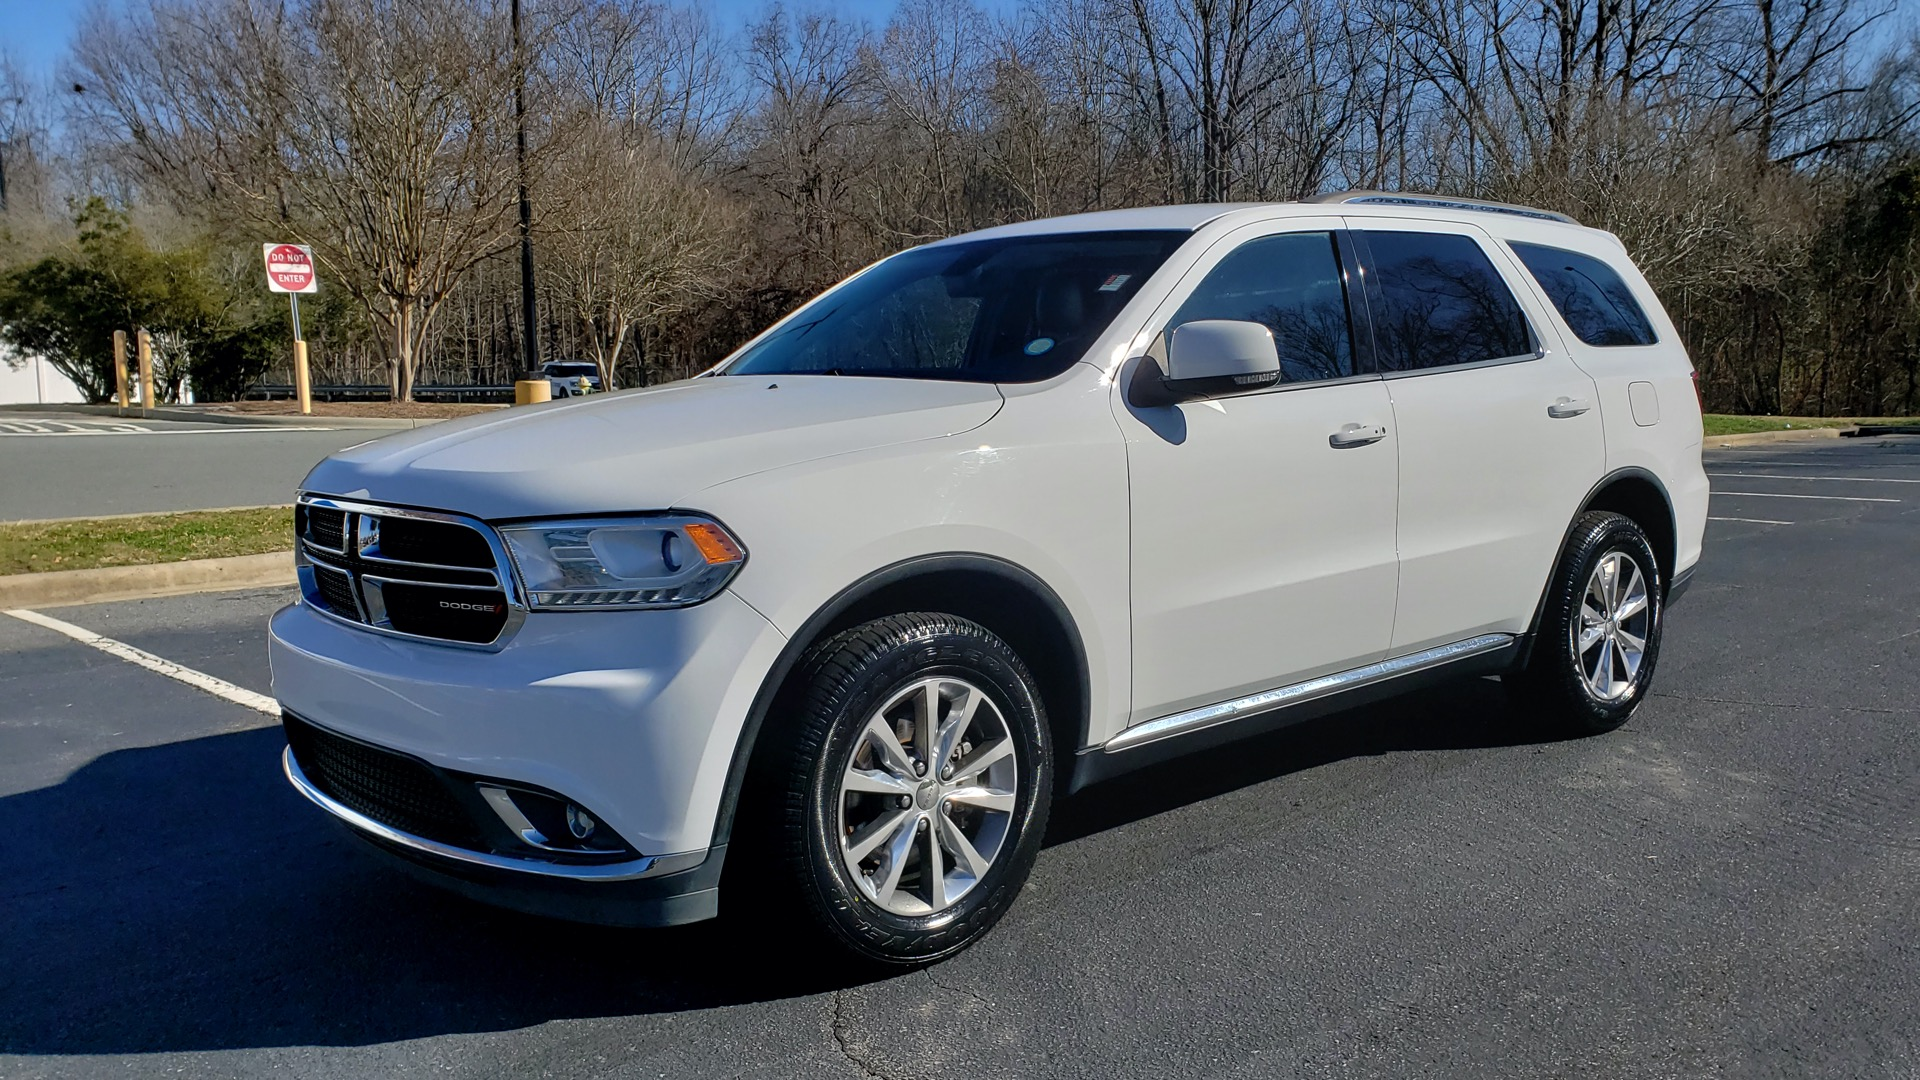 Used 2015 Dodge DURANGO LIMITED AWD / 3.6L V6 / 8-SPD AUTO / 3-ROW / REARVIEW for sale Sold at Formula Imports in Charlotte NC 28227 1